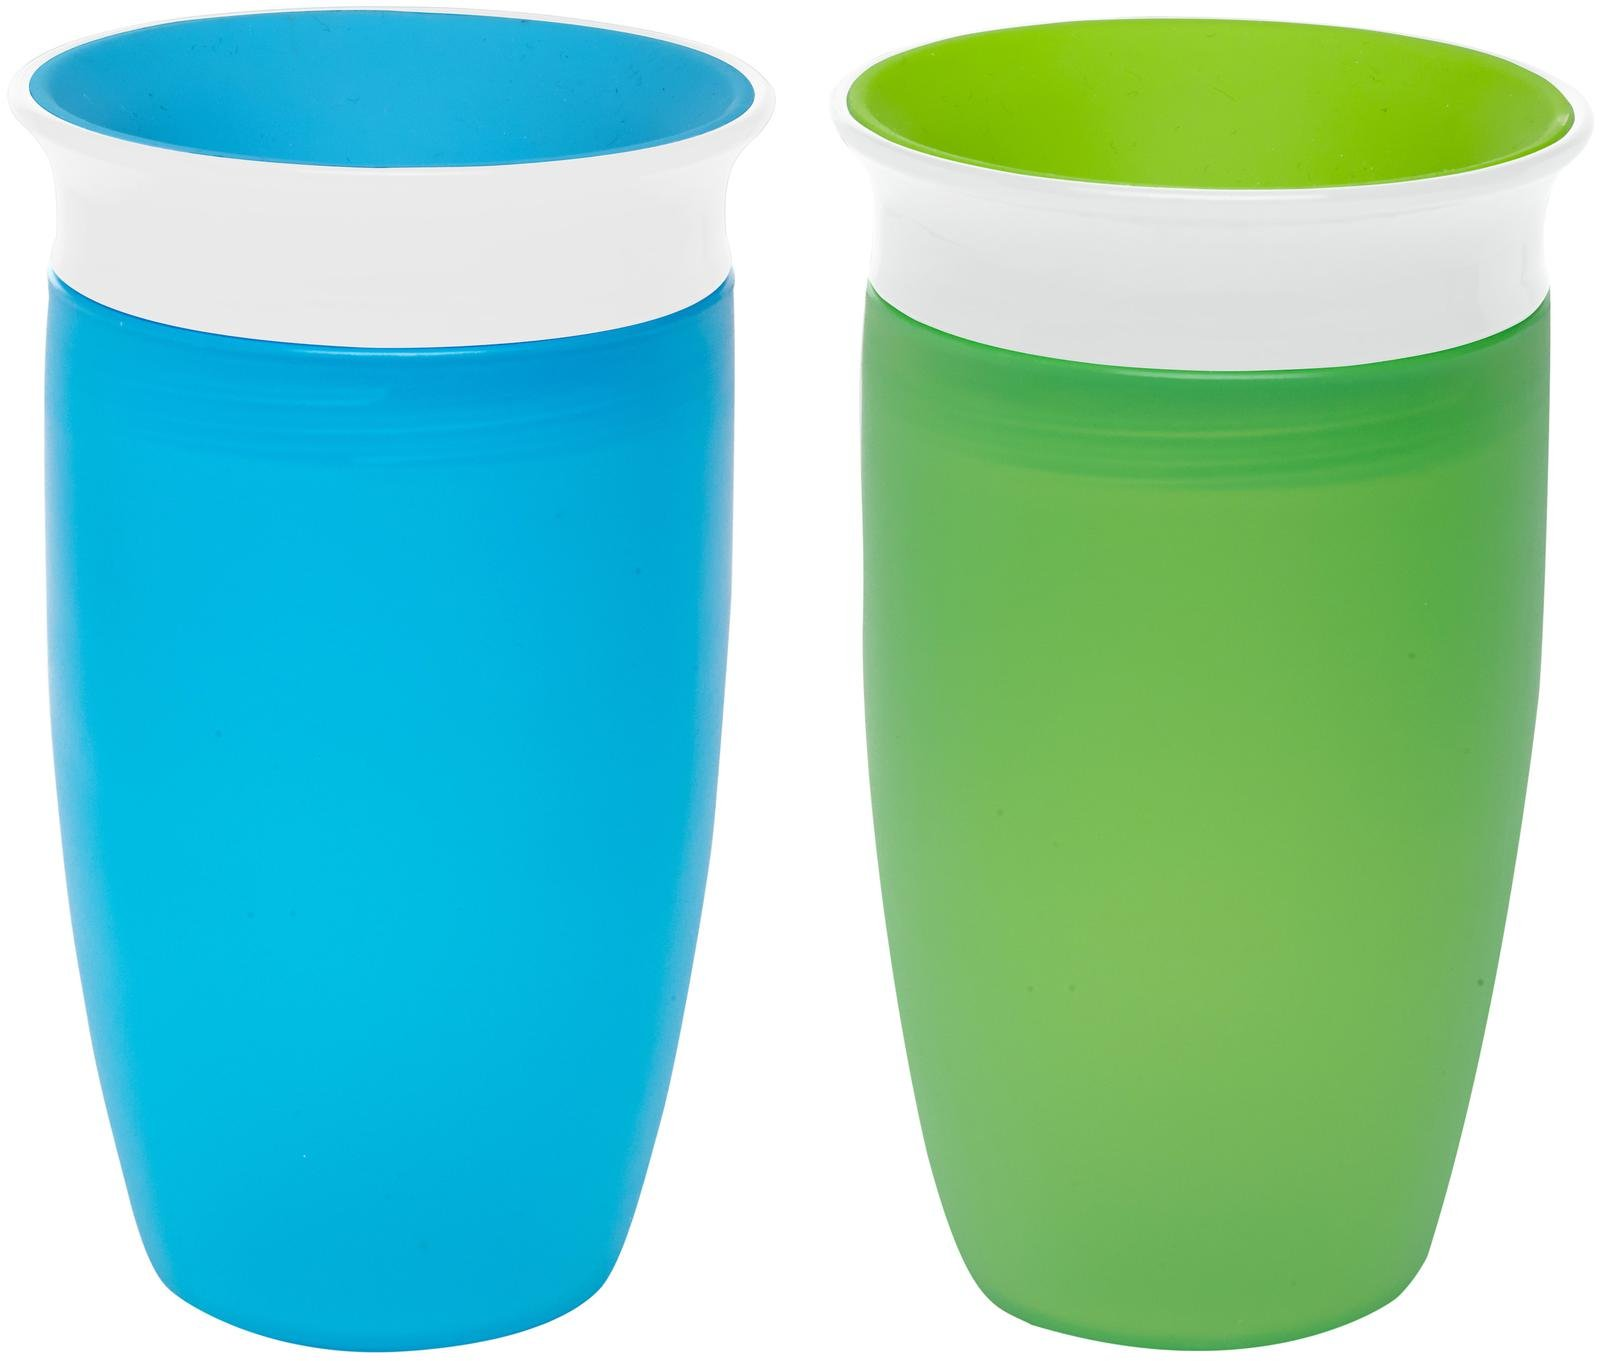 Munchkin Miracle 360 Sippy Cup - Green/Blue - 10 oz - 1 ct.